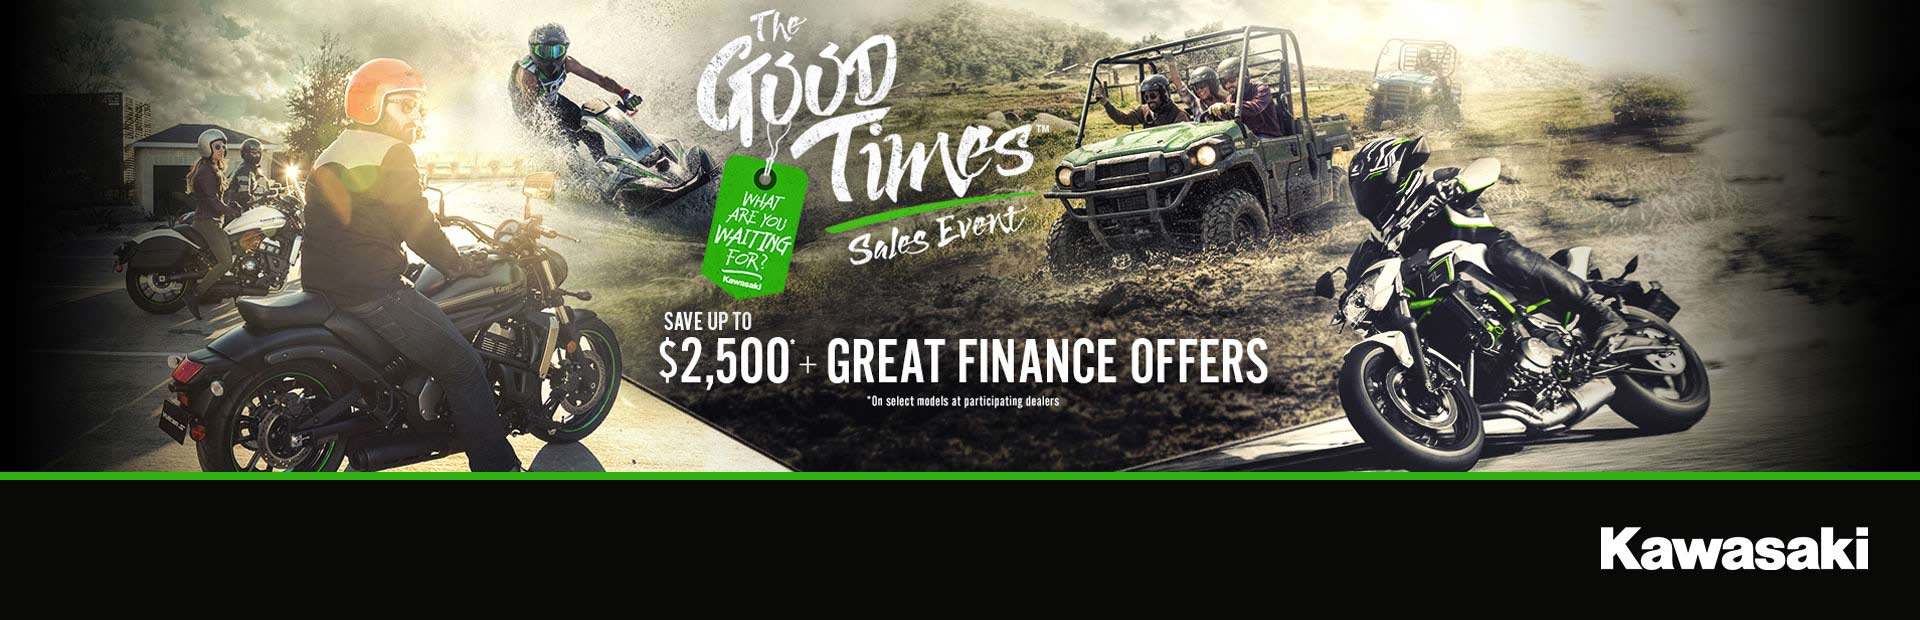 The Good Times Sales Event Retail Finance Offers